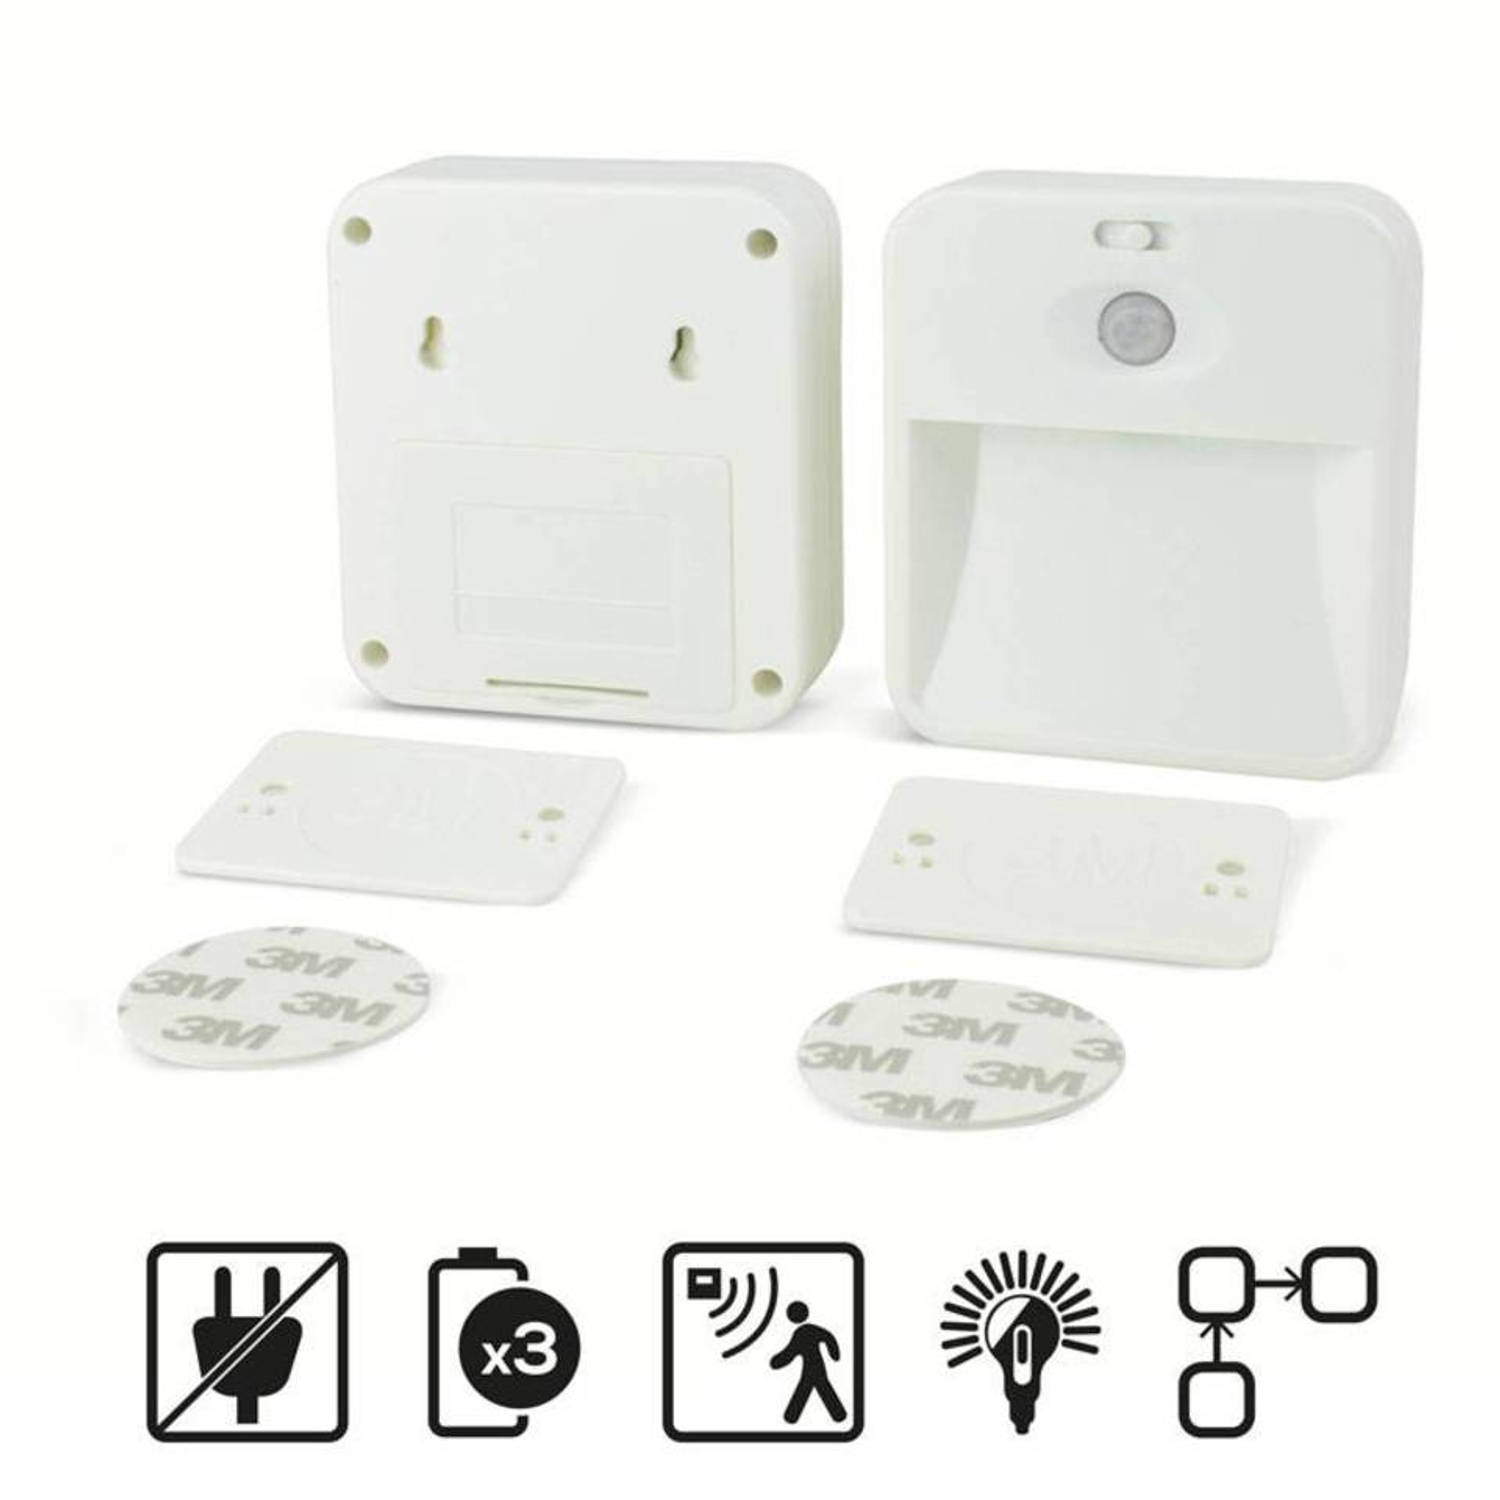 Koppelbare led nachtlamp (set van 2)